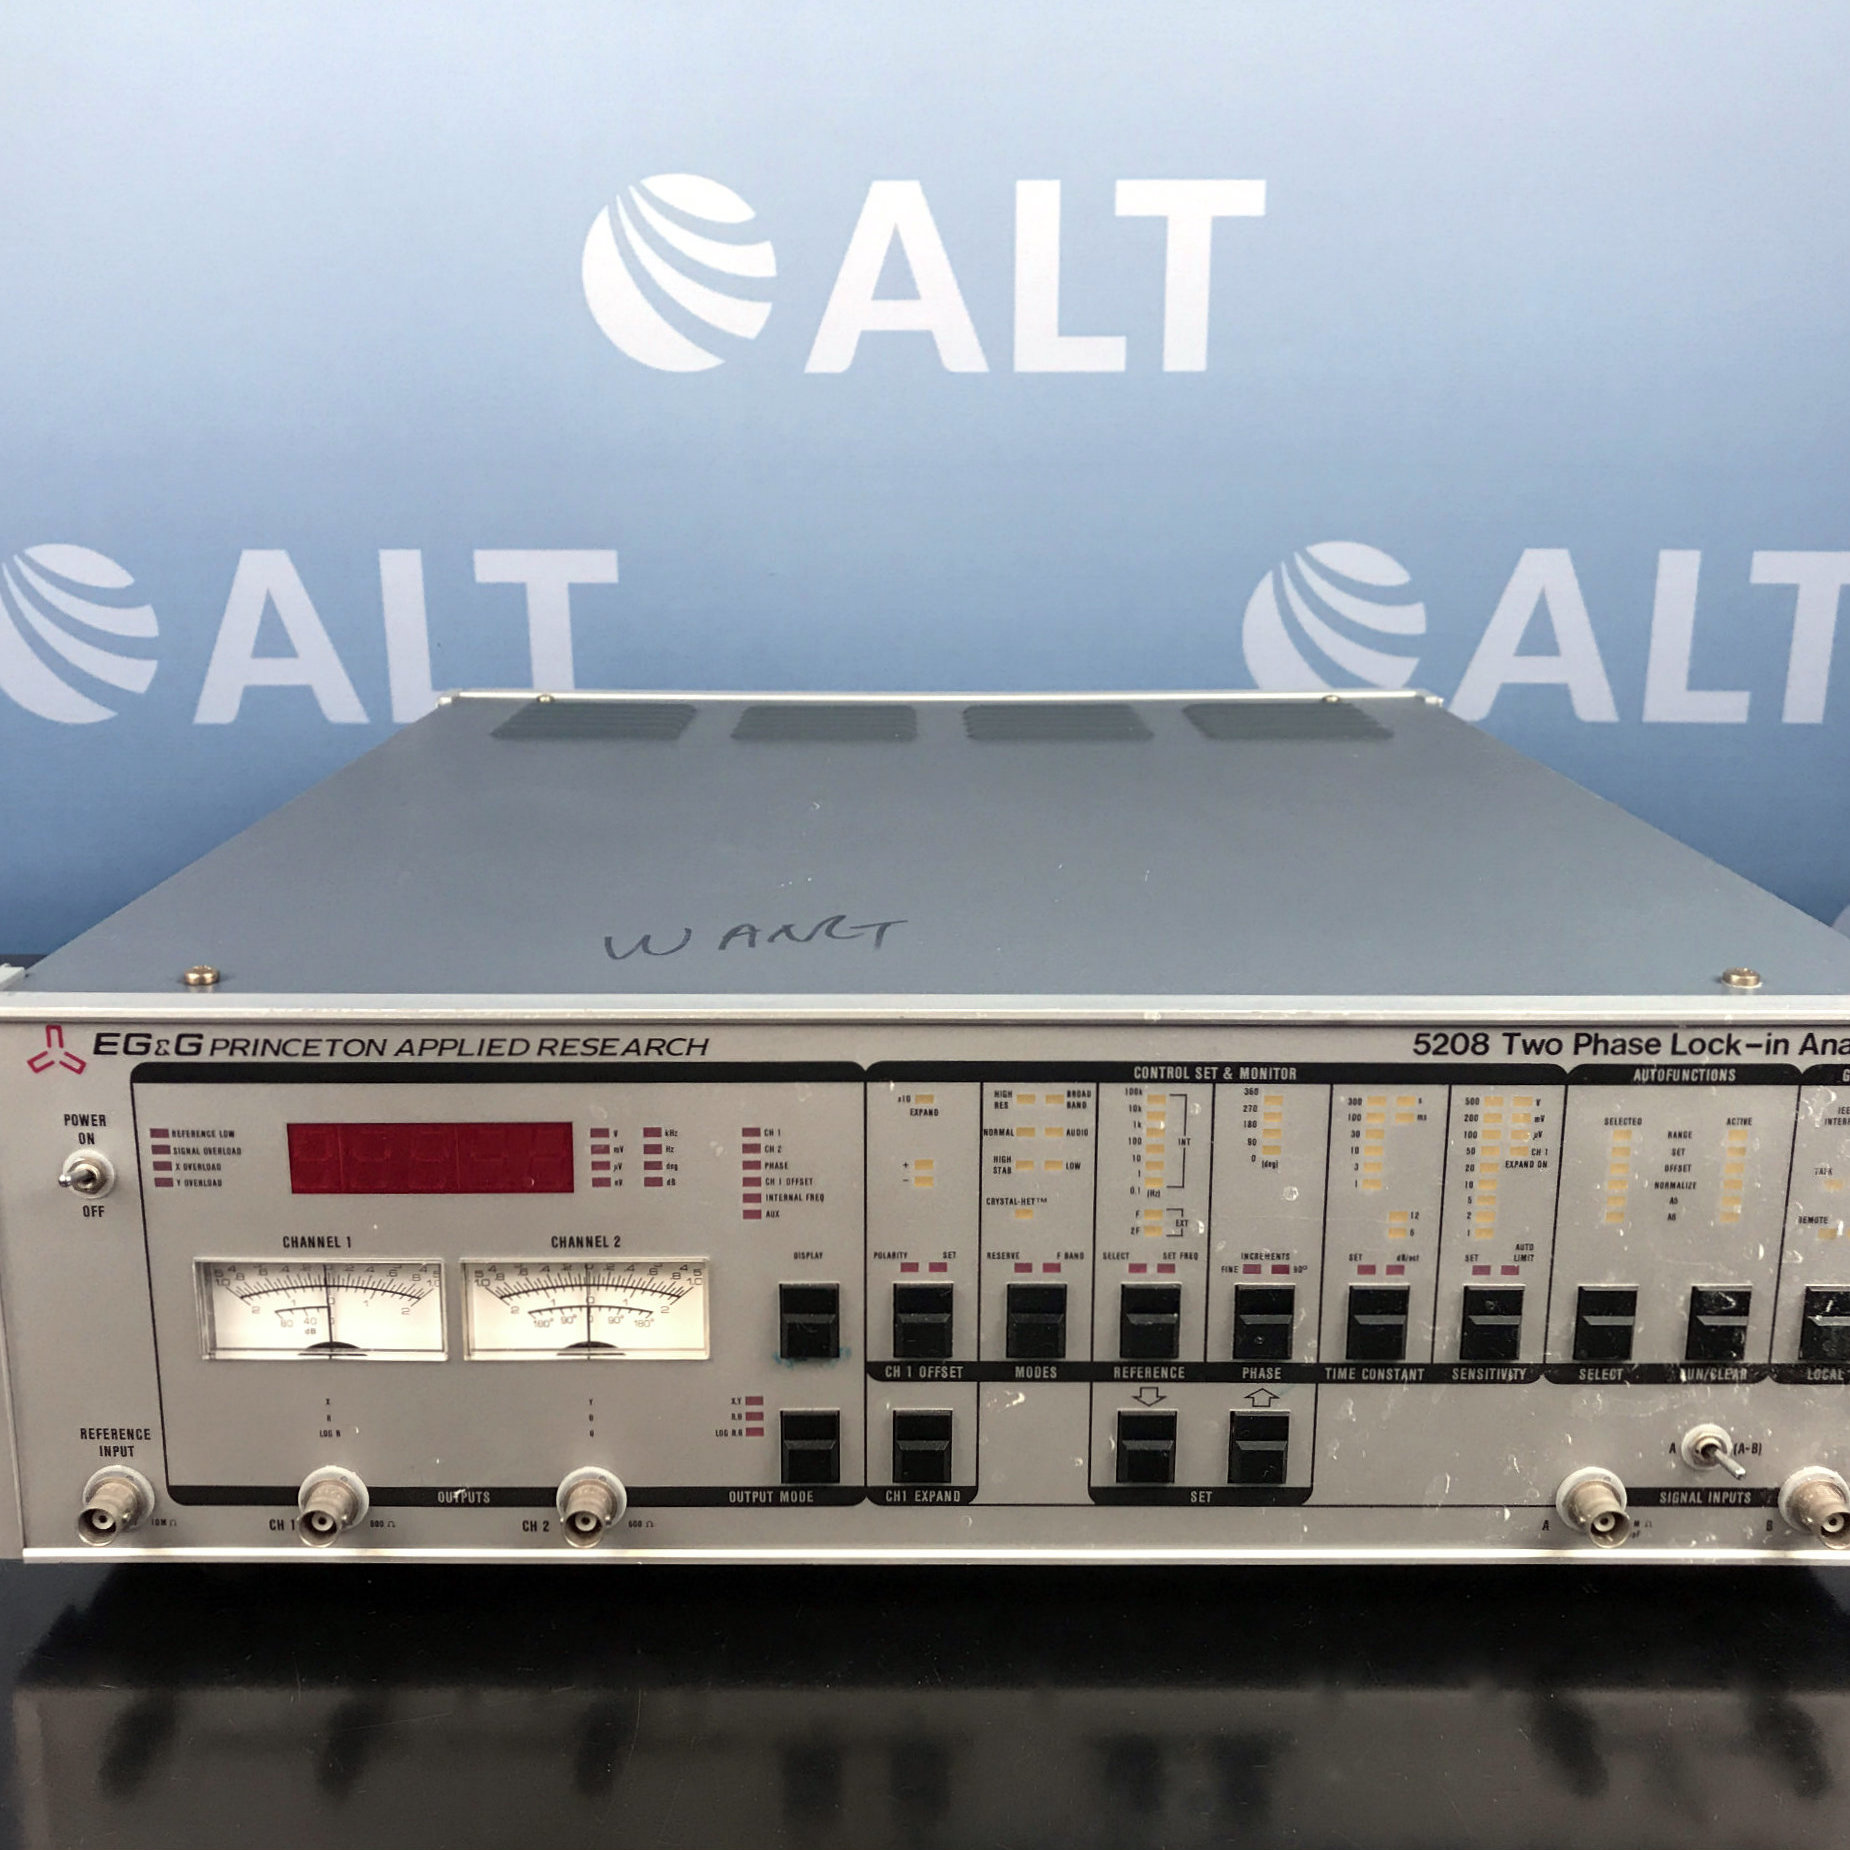 EG & E Princeton Applied Research 5208 Two Phase Lock-in Analyzer Image